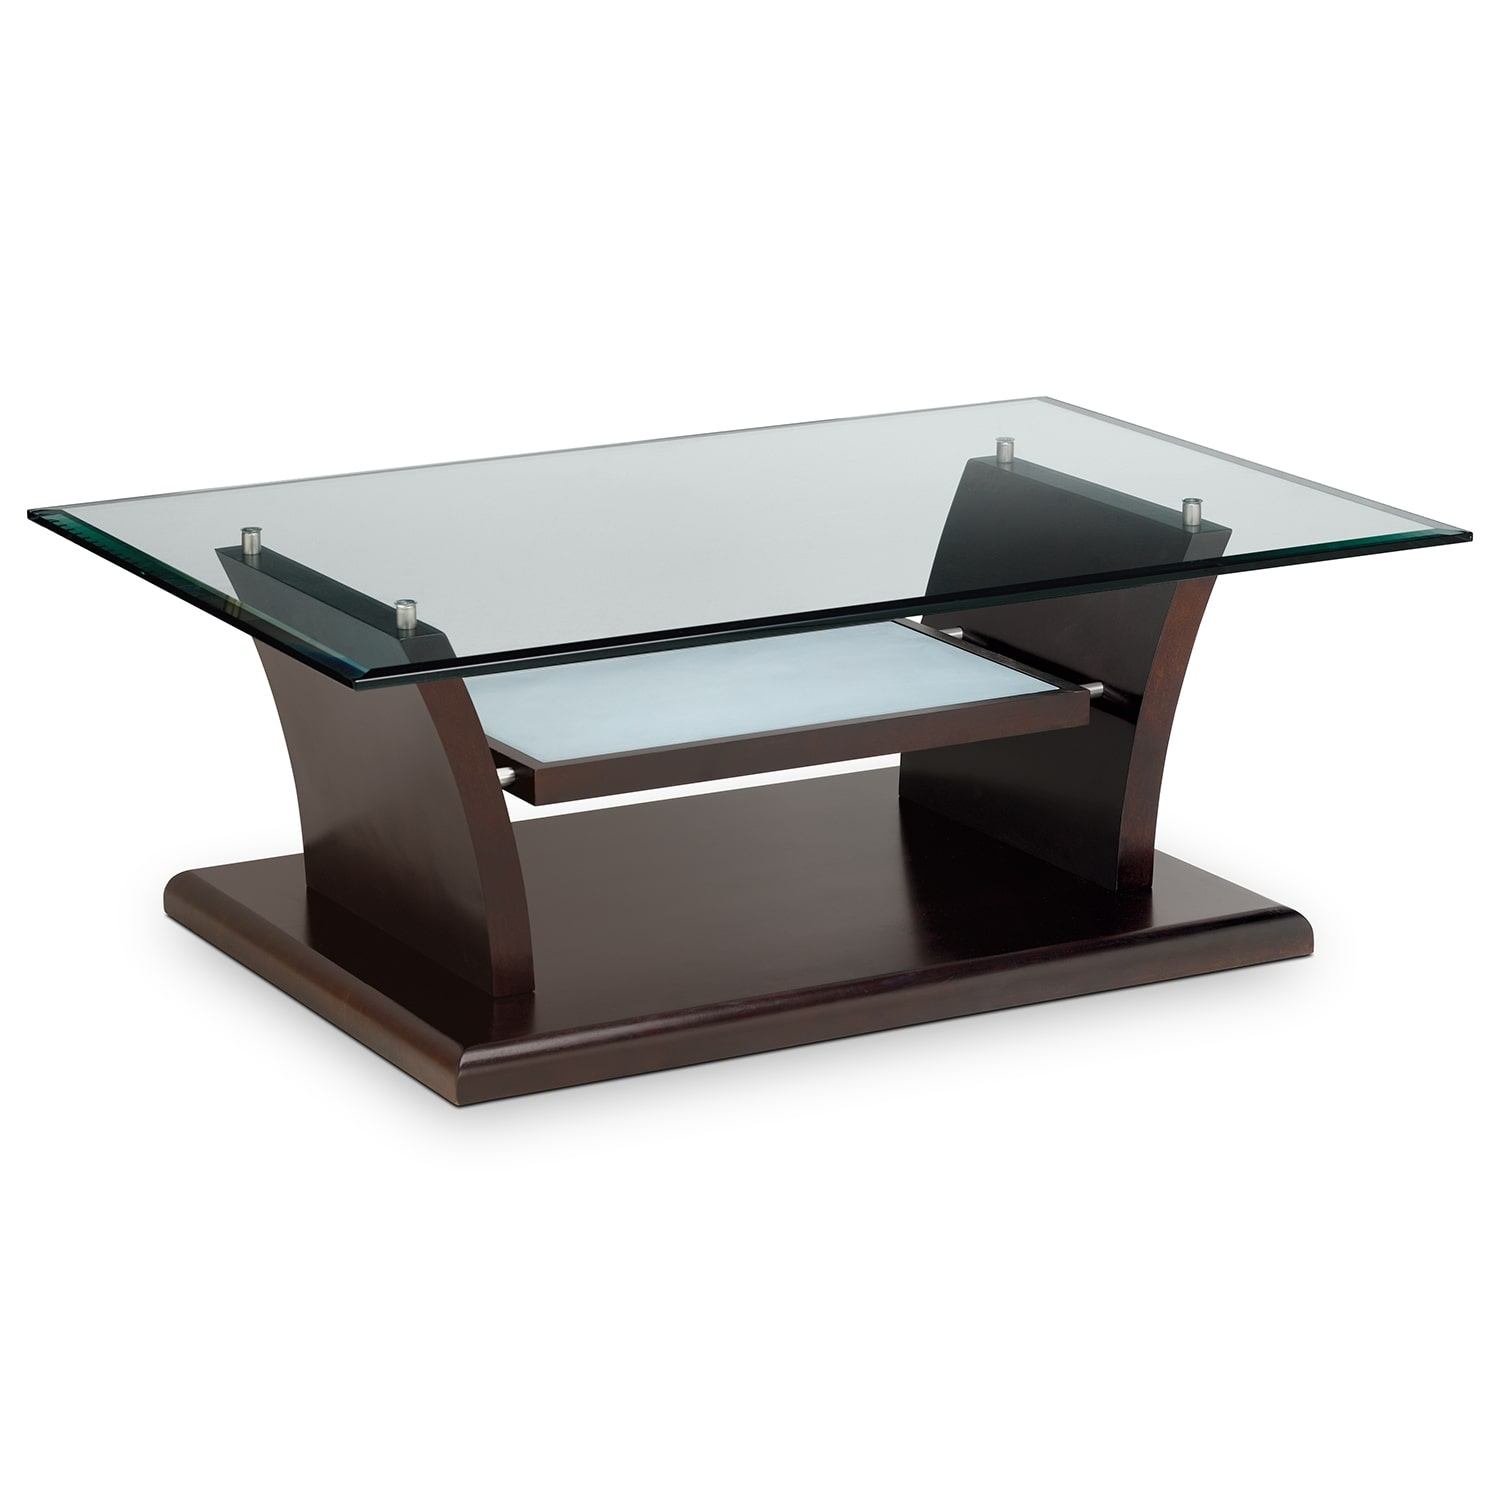 Bell aer cocktail table american signature furniture for Cocktail tables